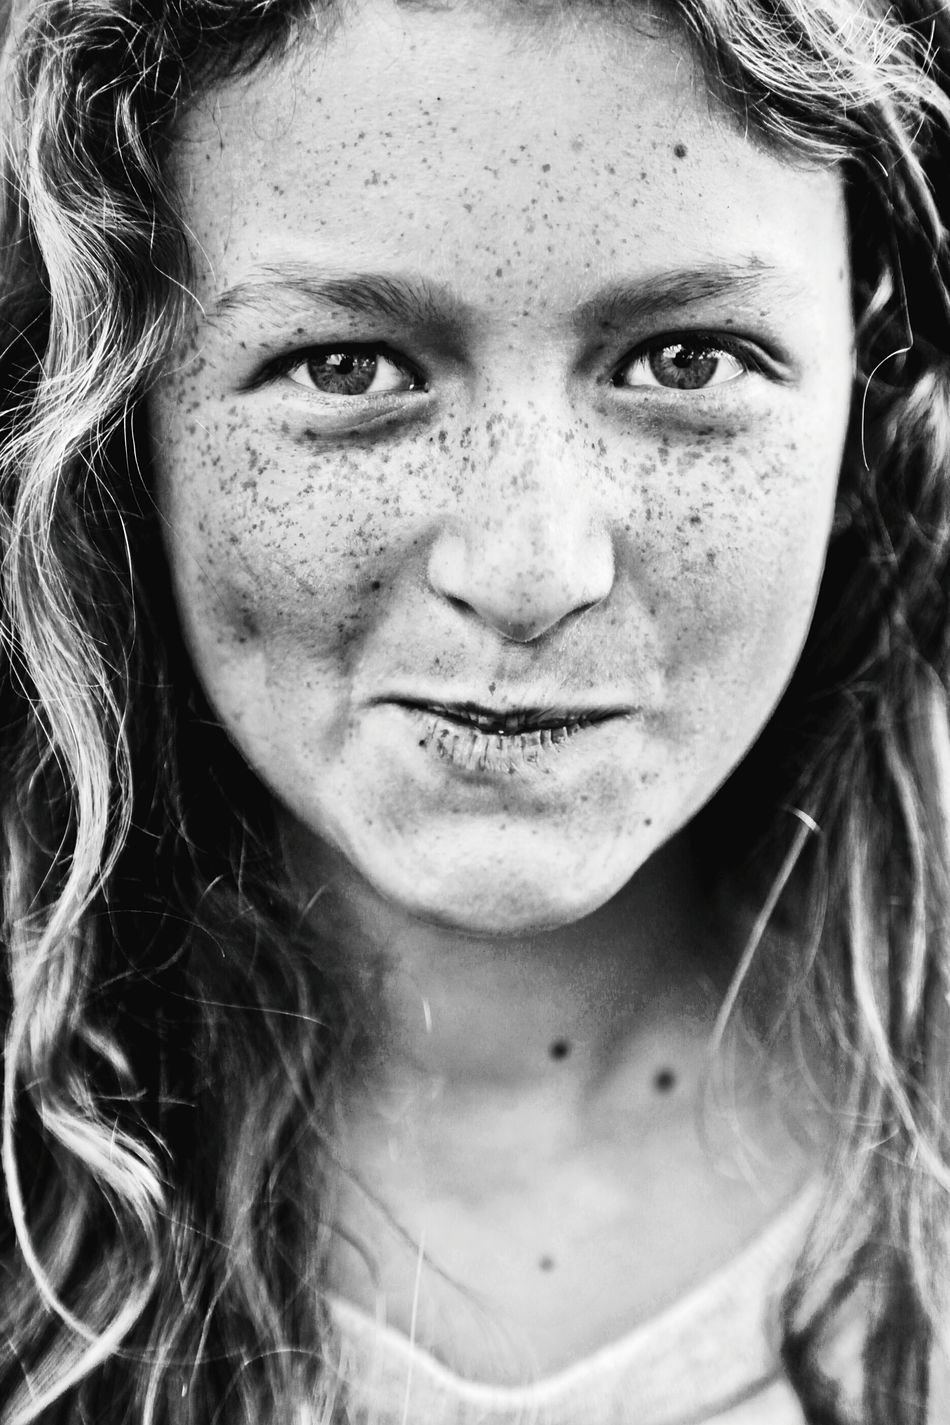 Portrait Close-up Child Girl Freckle Freckles Freckled Girl Freckle Face Headshot One Person One Girl Only Real People People Looking At Camera Black & White Black And White Blackandwhite Beauty Looking At Camera Human Face Expression EyeEmNewHere Resist Art Is Everywhere Fresh On Market 2017